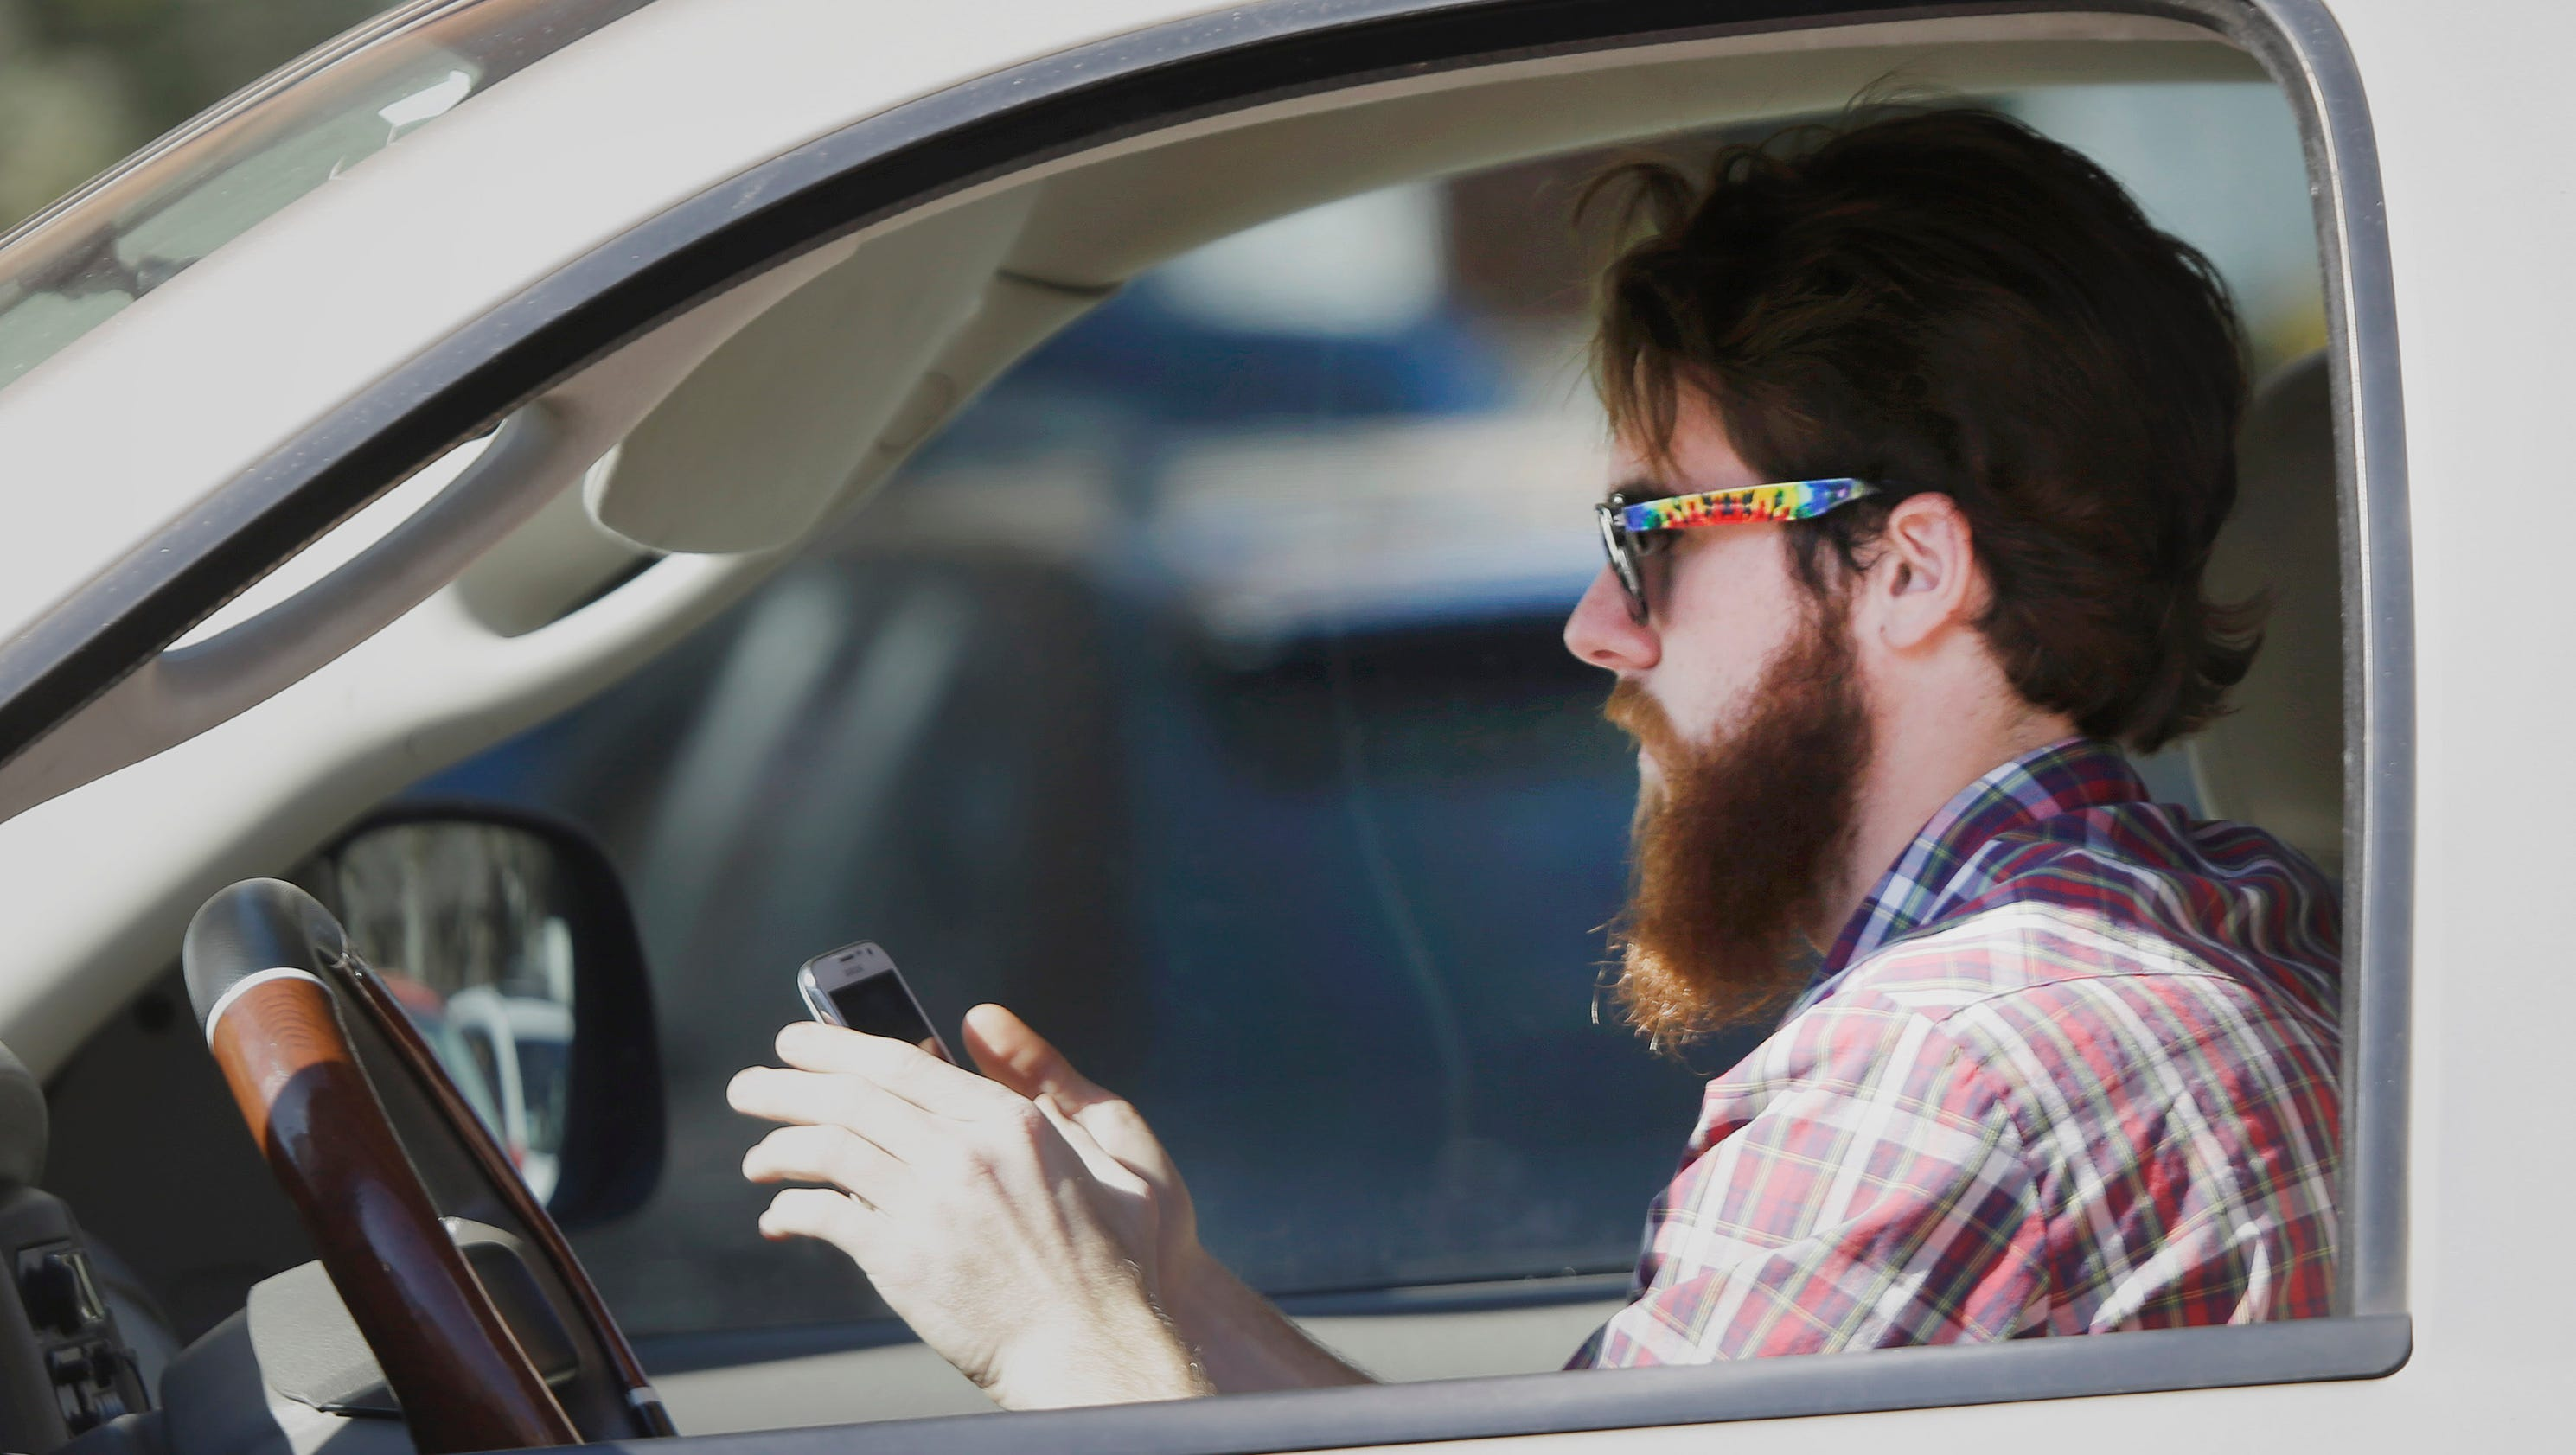 Texting while driving kills but will we stop